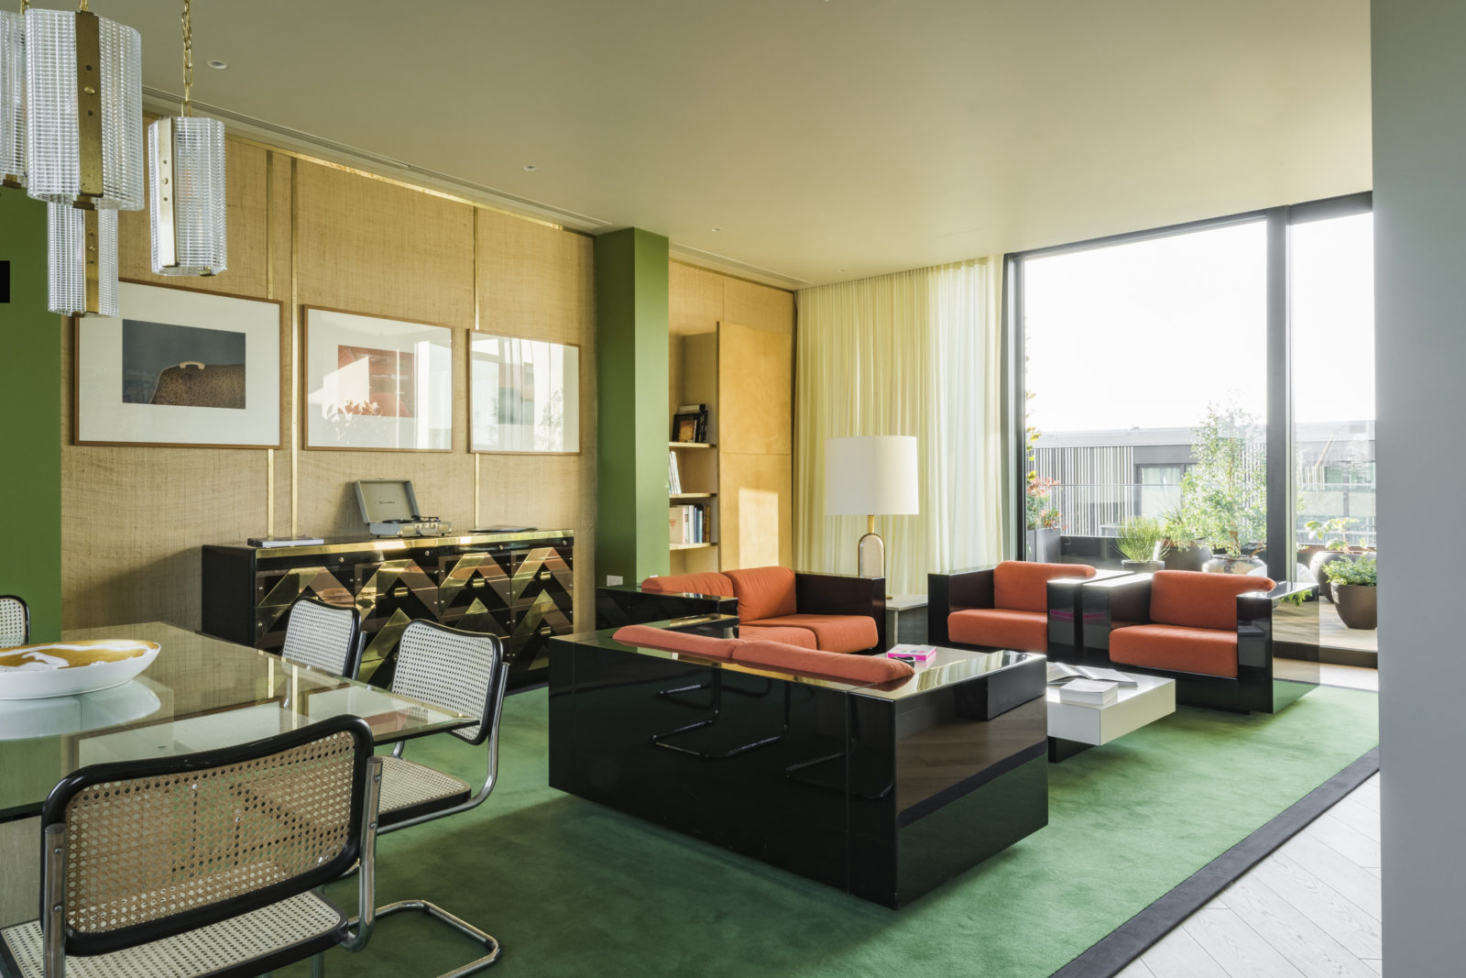 The collection of vintage furnishings was sourced by Maria Speake, co-founder of Retrouvius. The deep green carpet with black border is a favorite of Freud&#8